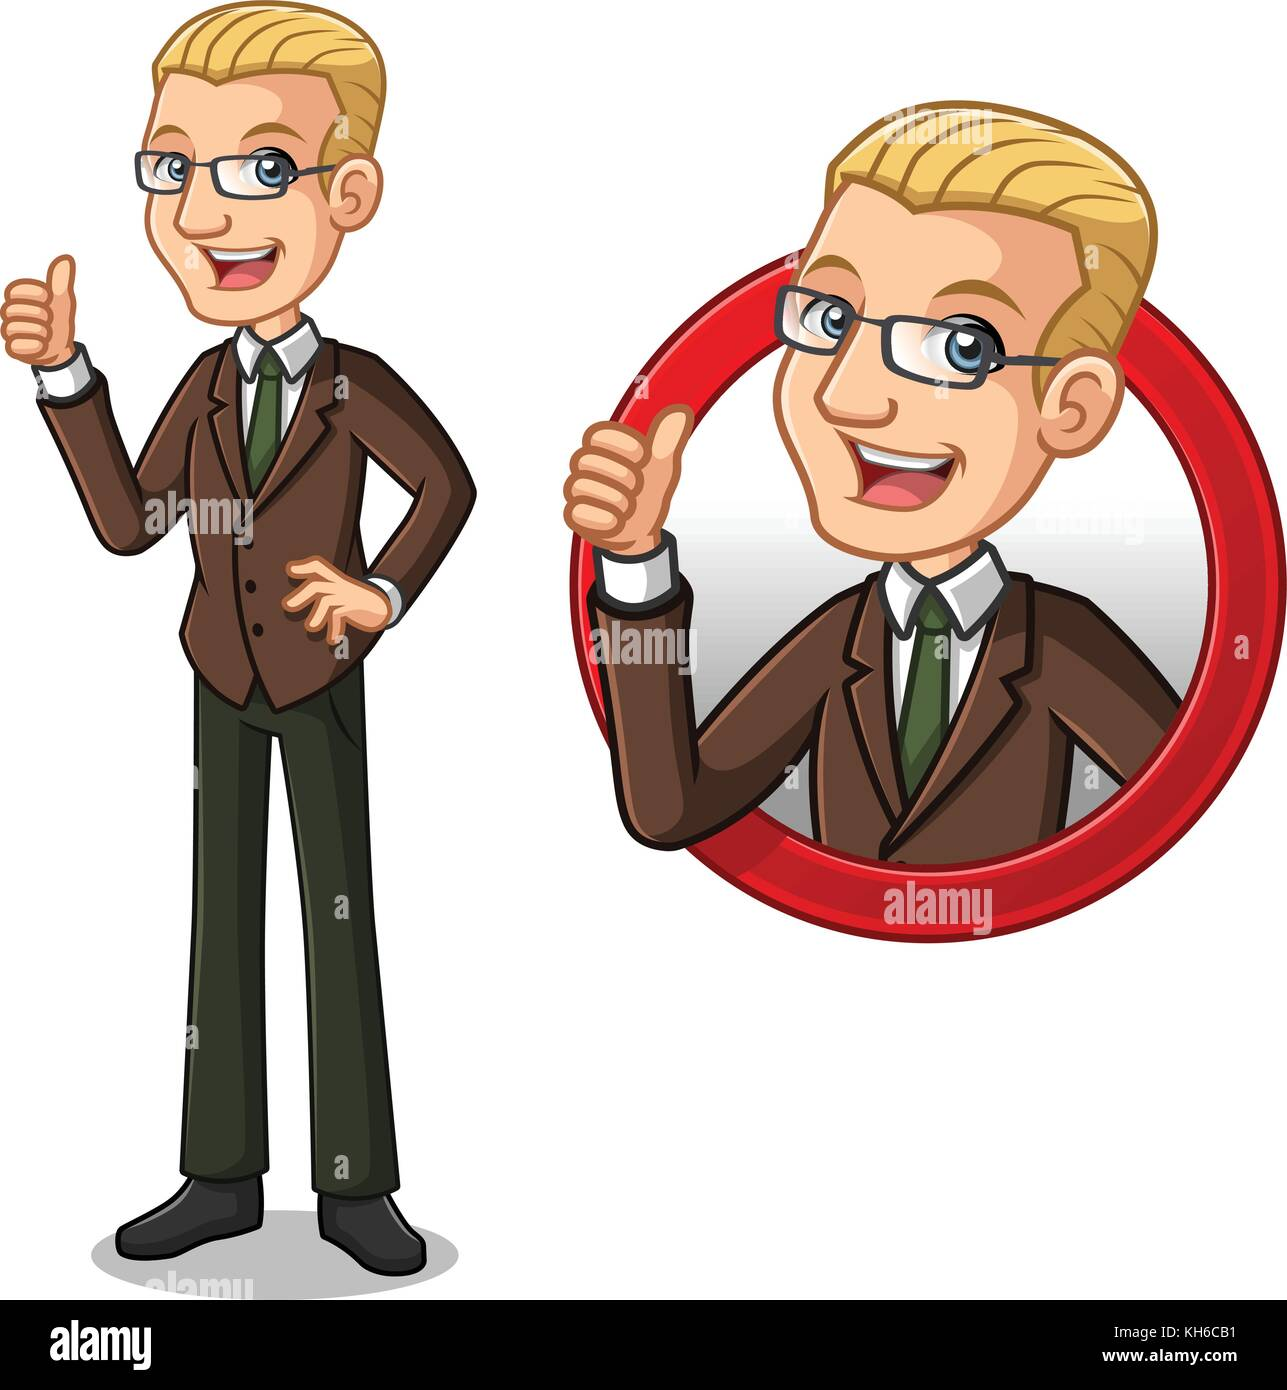 Set of blonde businessman in brown suit cartoon character design, inside the circle logo concept with showing like, - Stock Image